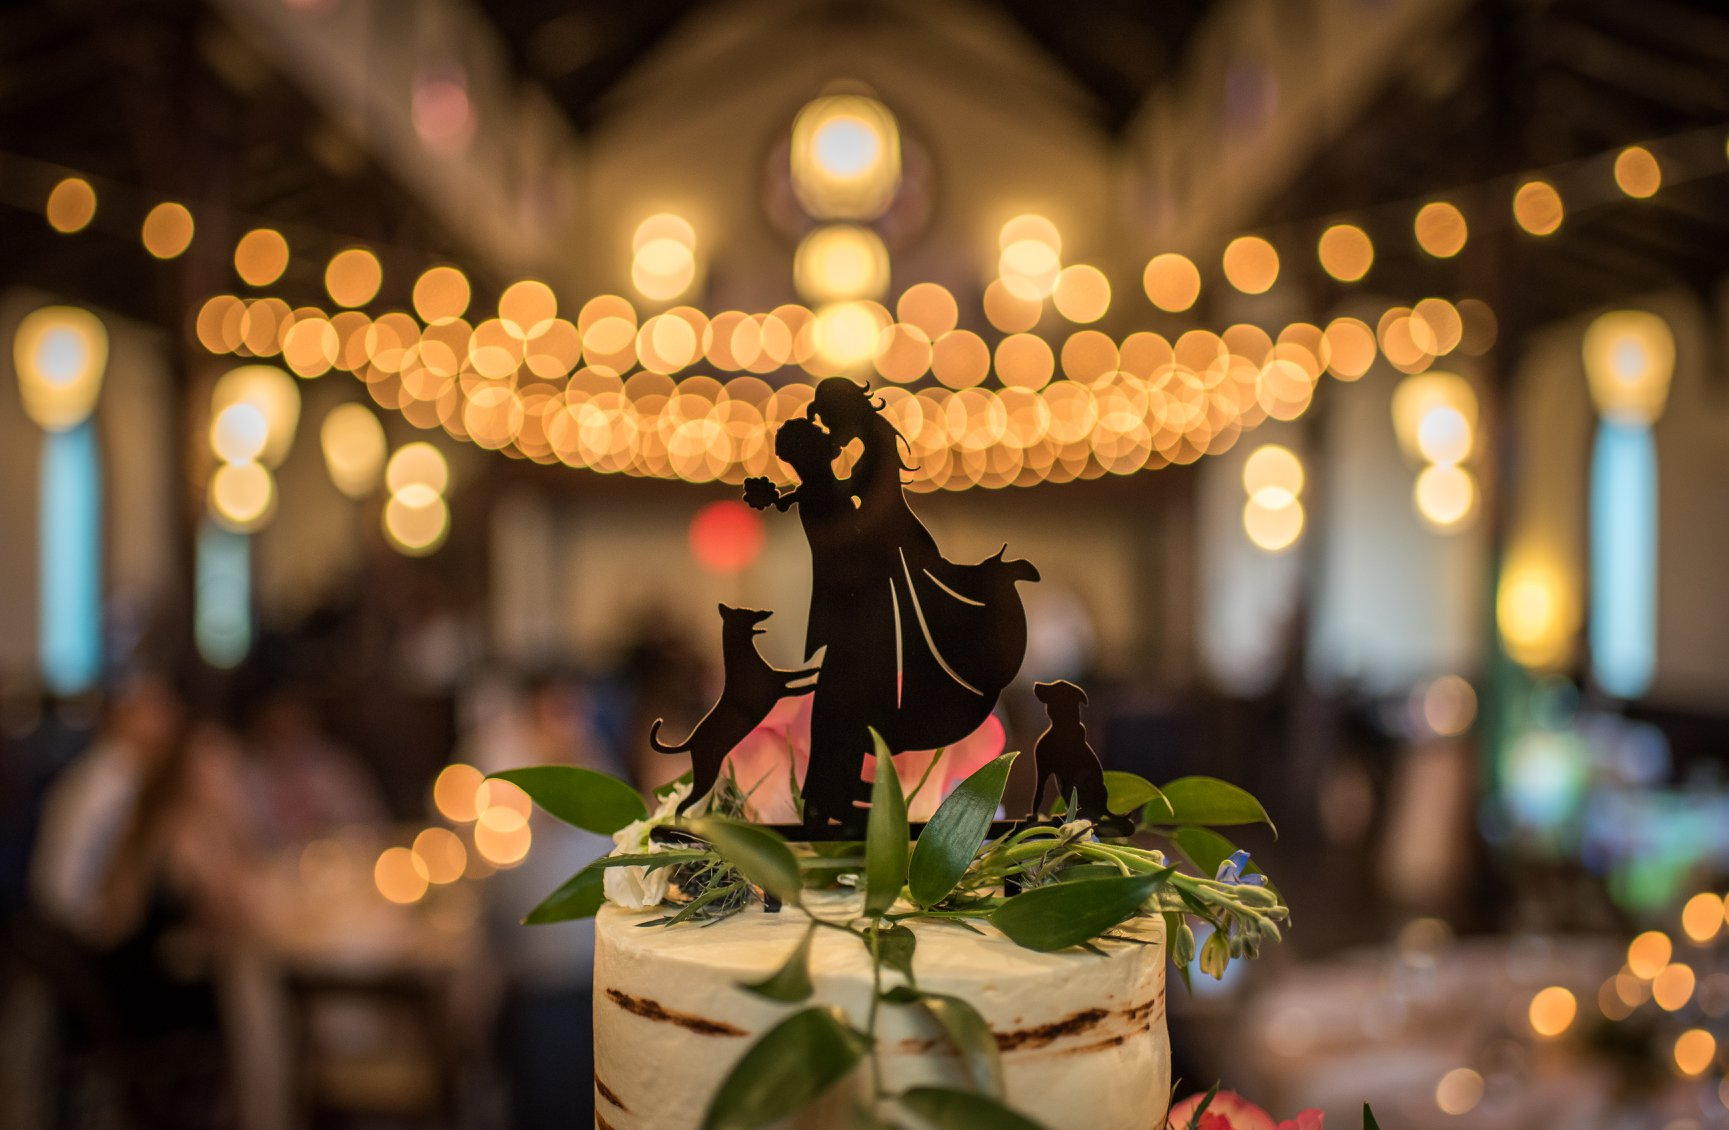 Silhouette Cake Topper in Raleigh NC.jpg